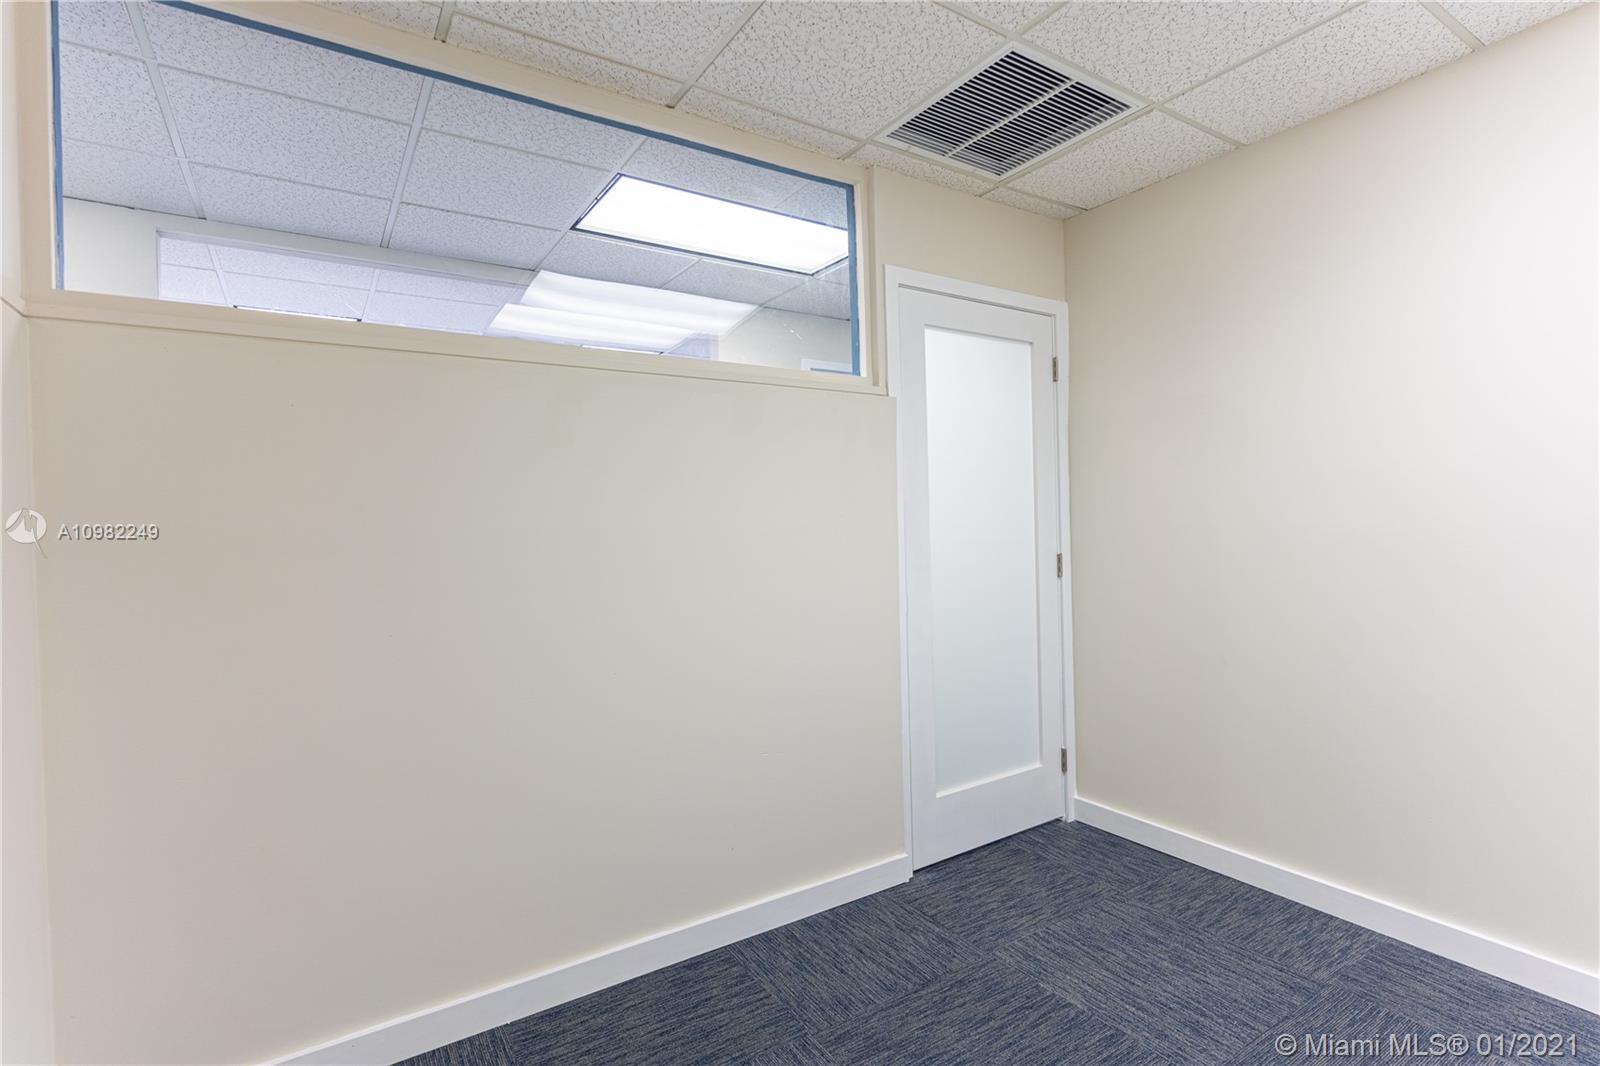 3201 N Federal Hwy # 200, Oakland Park, Florida 33306, ,Commercial Sale,For Sale,3201 N Federal Hwy # 200,A10982249